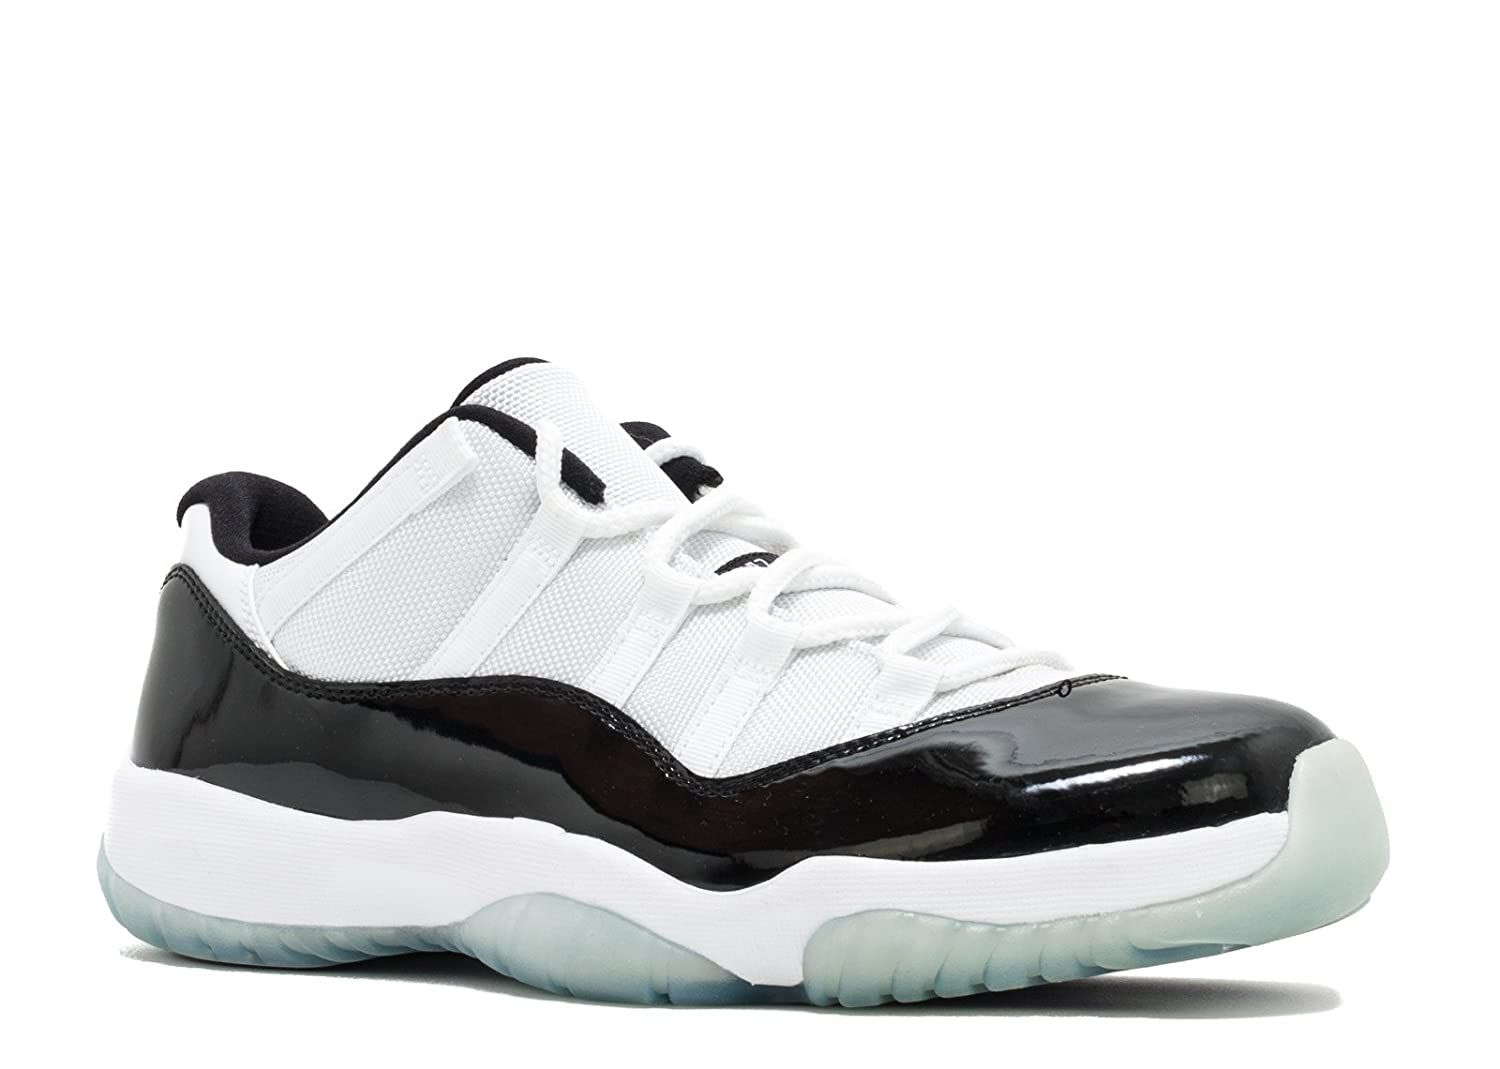 detailed look b964c 51181 Amazon.com | Air Jordan 11 Retro Low